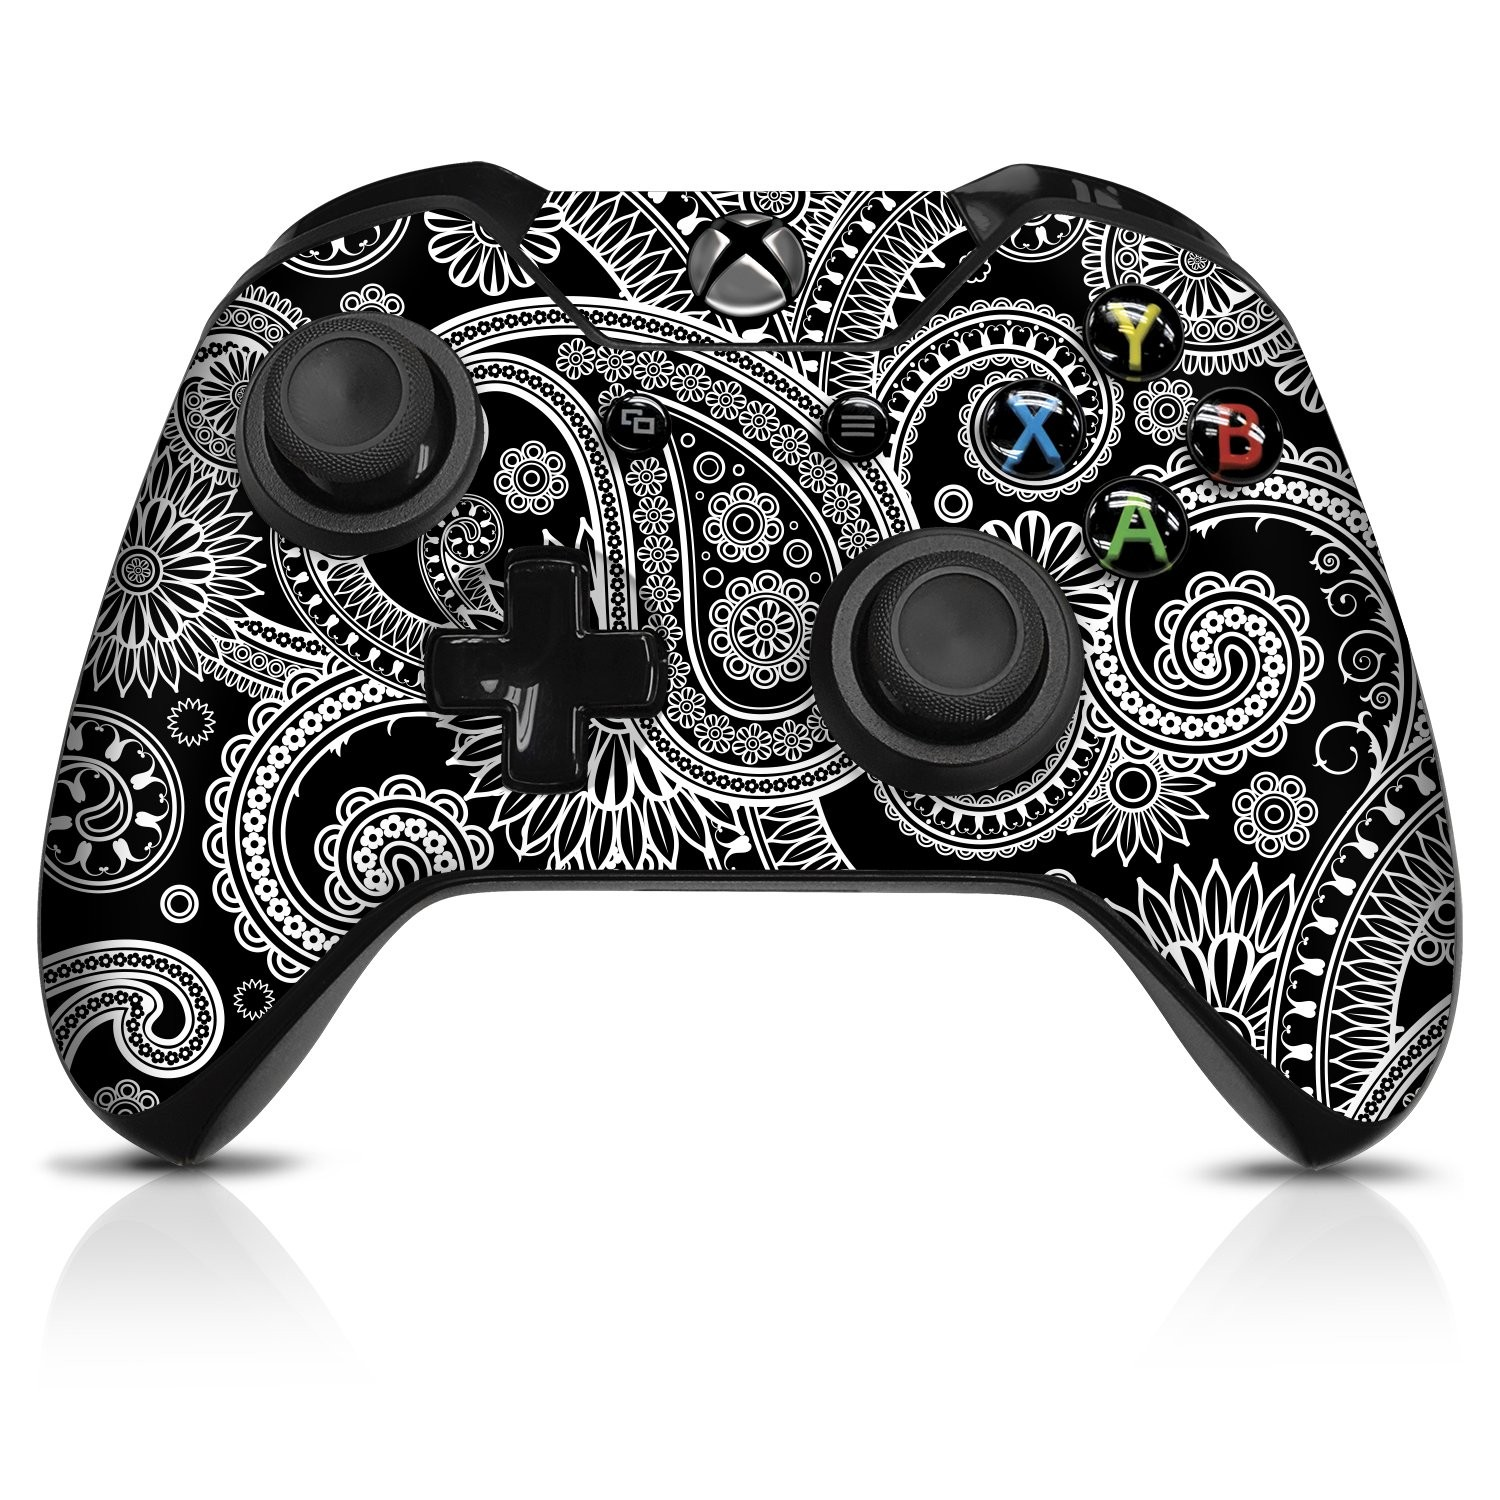 Bandana  Xbox One Controller Skin - Officially Licensed by Xbox - Controller Gear